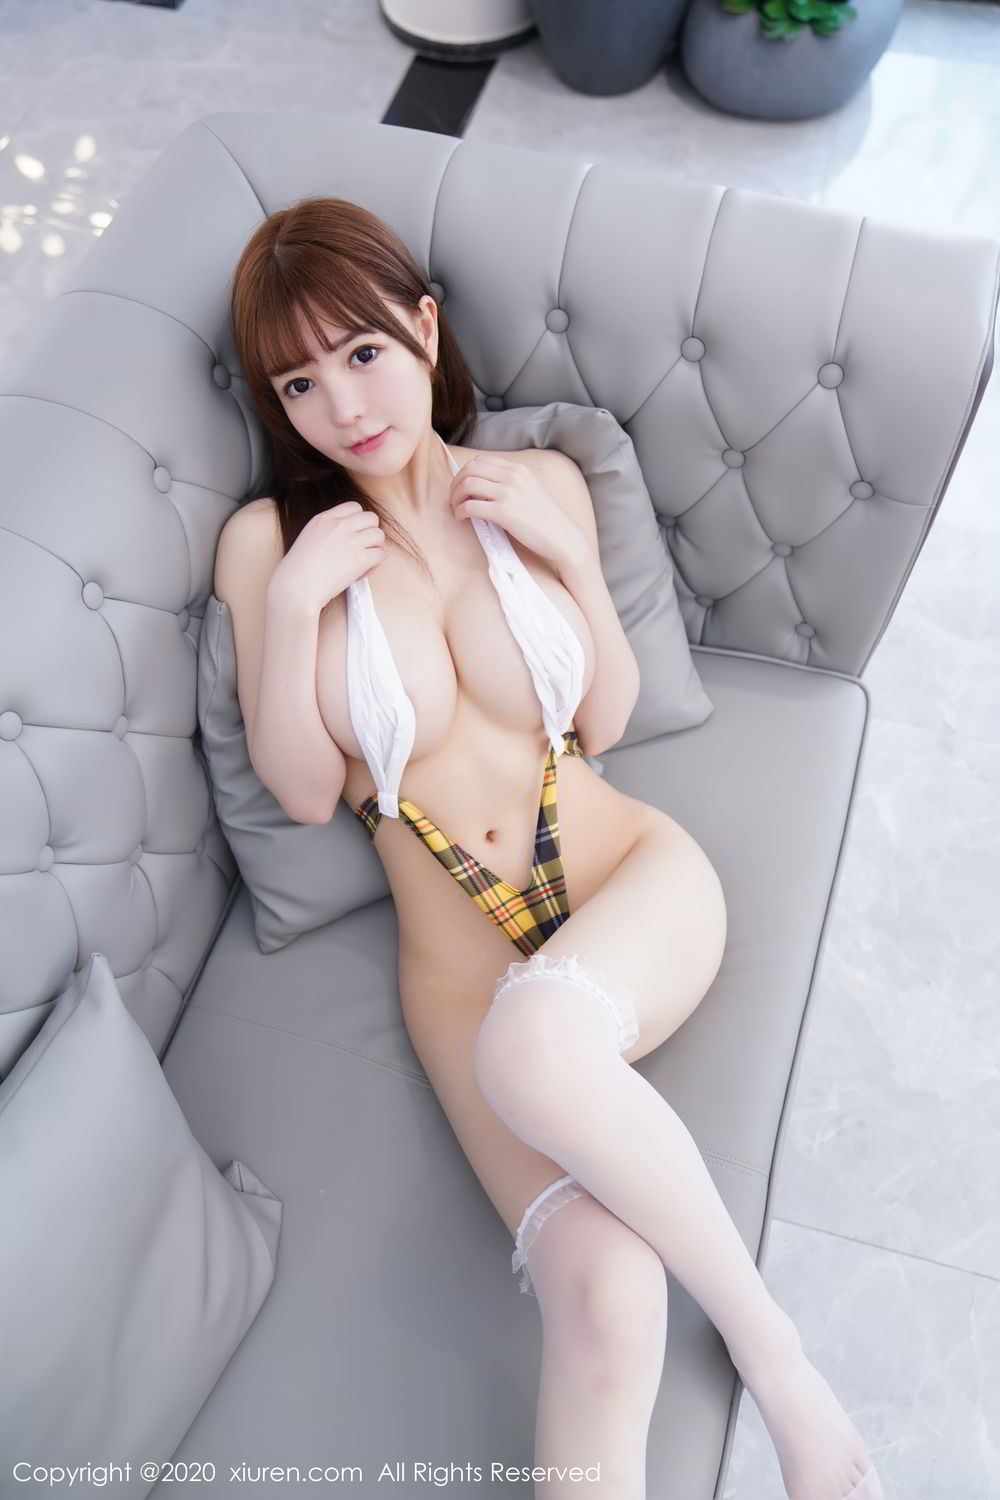 [XiuRen] Vol.2115 Uu Jiang 22P, Baby Face Big Boobs, Cute, UU Jiang, Xiuren